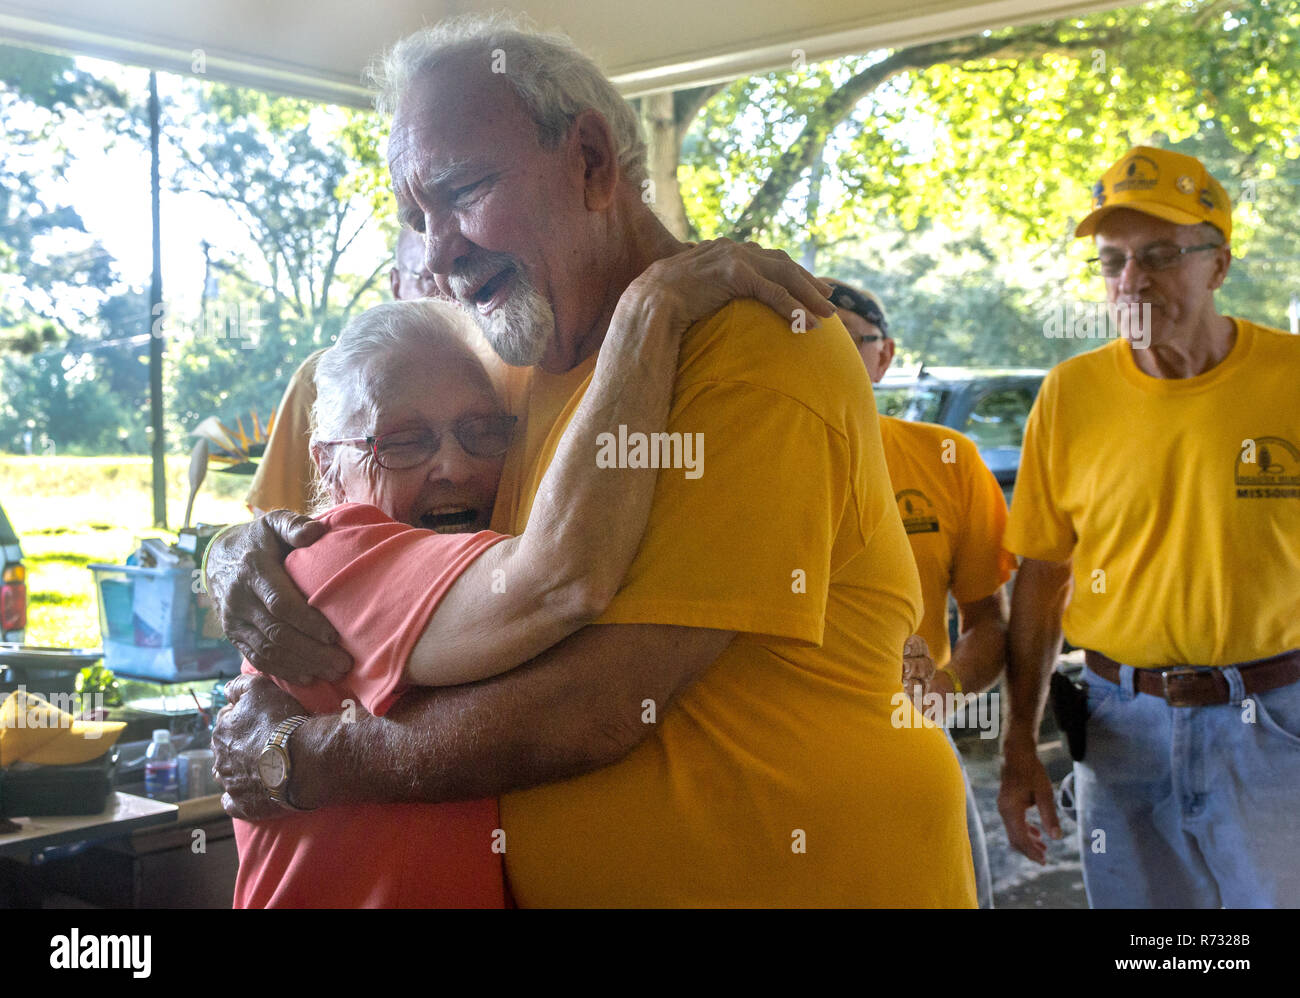 A flood victim hugs a Southern Baptist Disaster Relief volunteer after a flood in Baton Rouge, Louisiana. - Stock Image